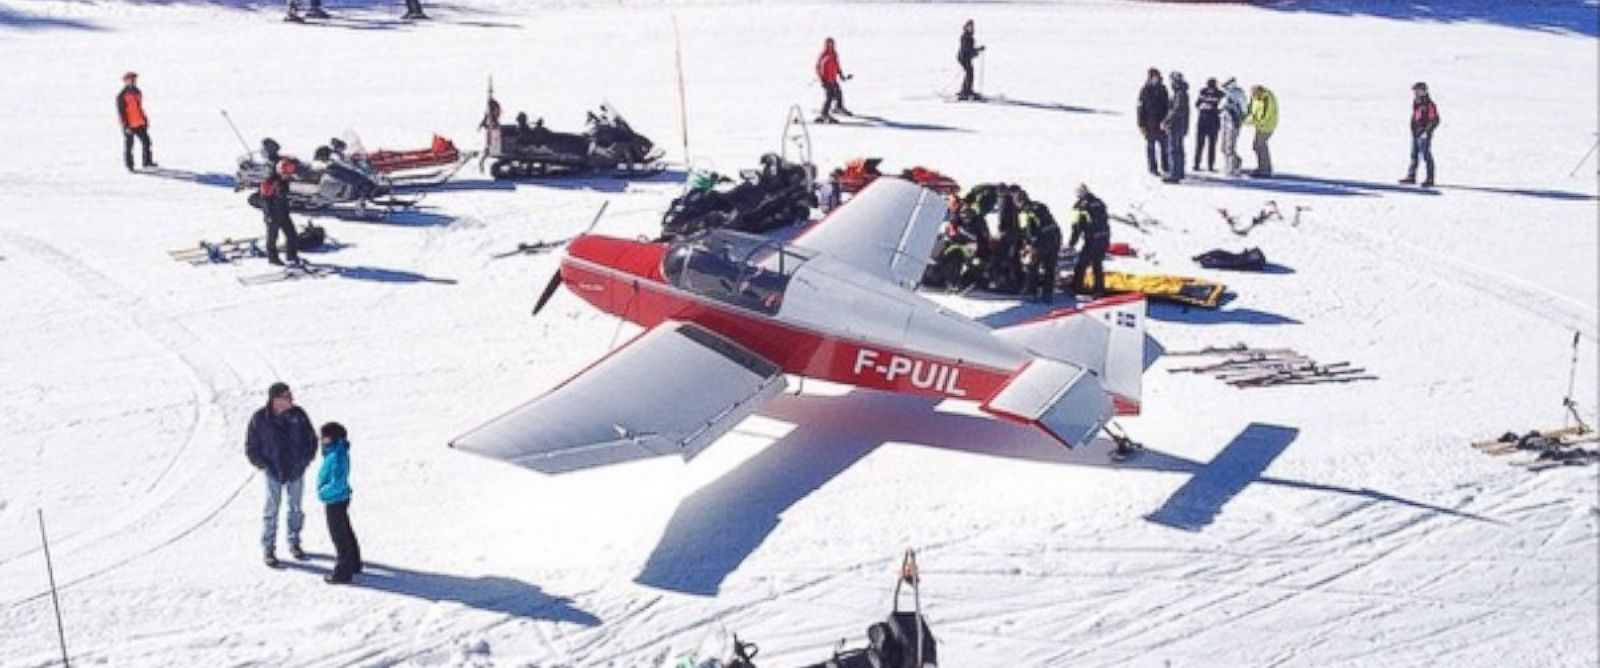 "PHOTO: tom_vh posted this photo on Instagram with this caption: ""Breaking news! Plane on the slope in avoriaz! #accident #weird #breakingnews #morzine #avoriaz #orwasitanexercise,"" March 12, 2015."